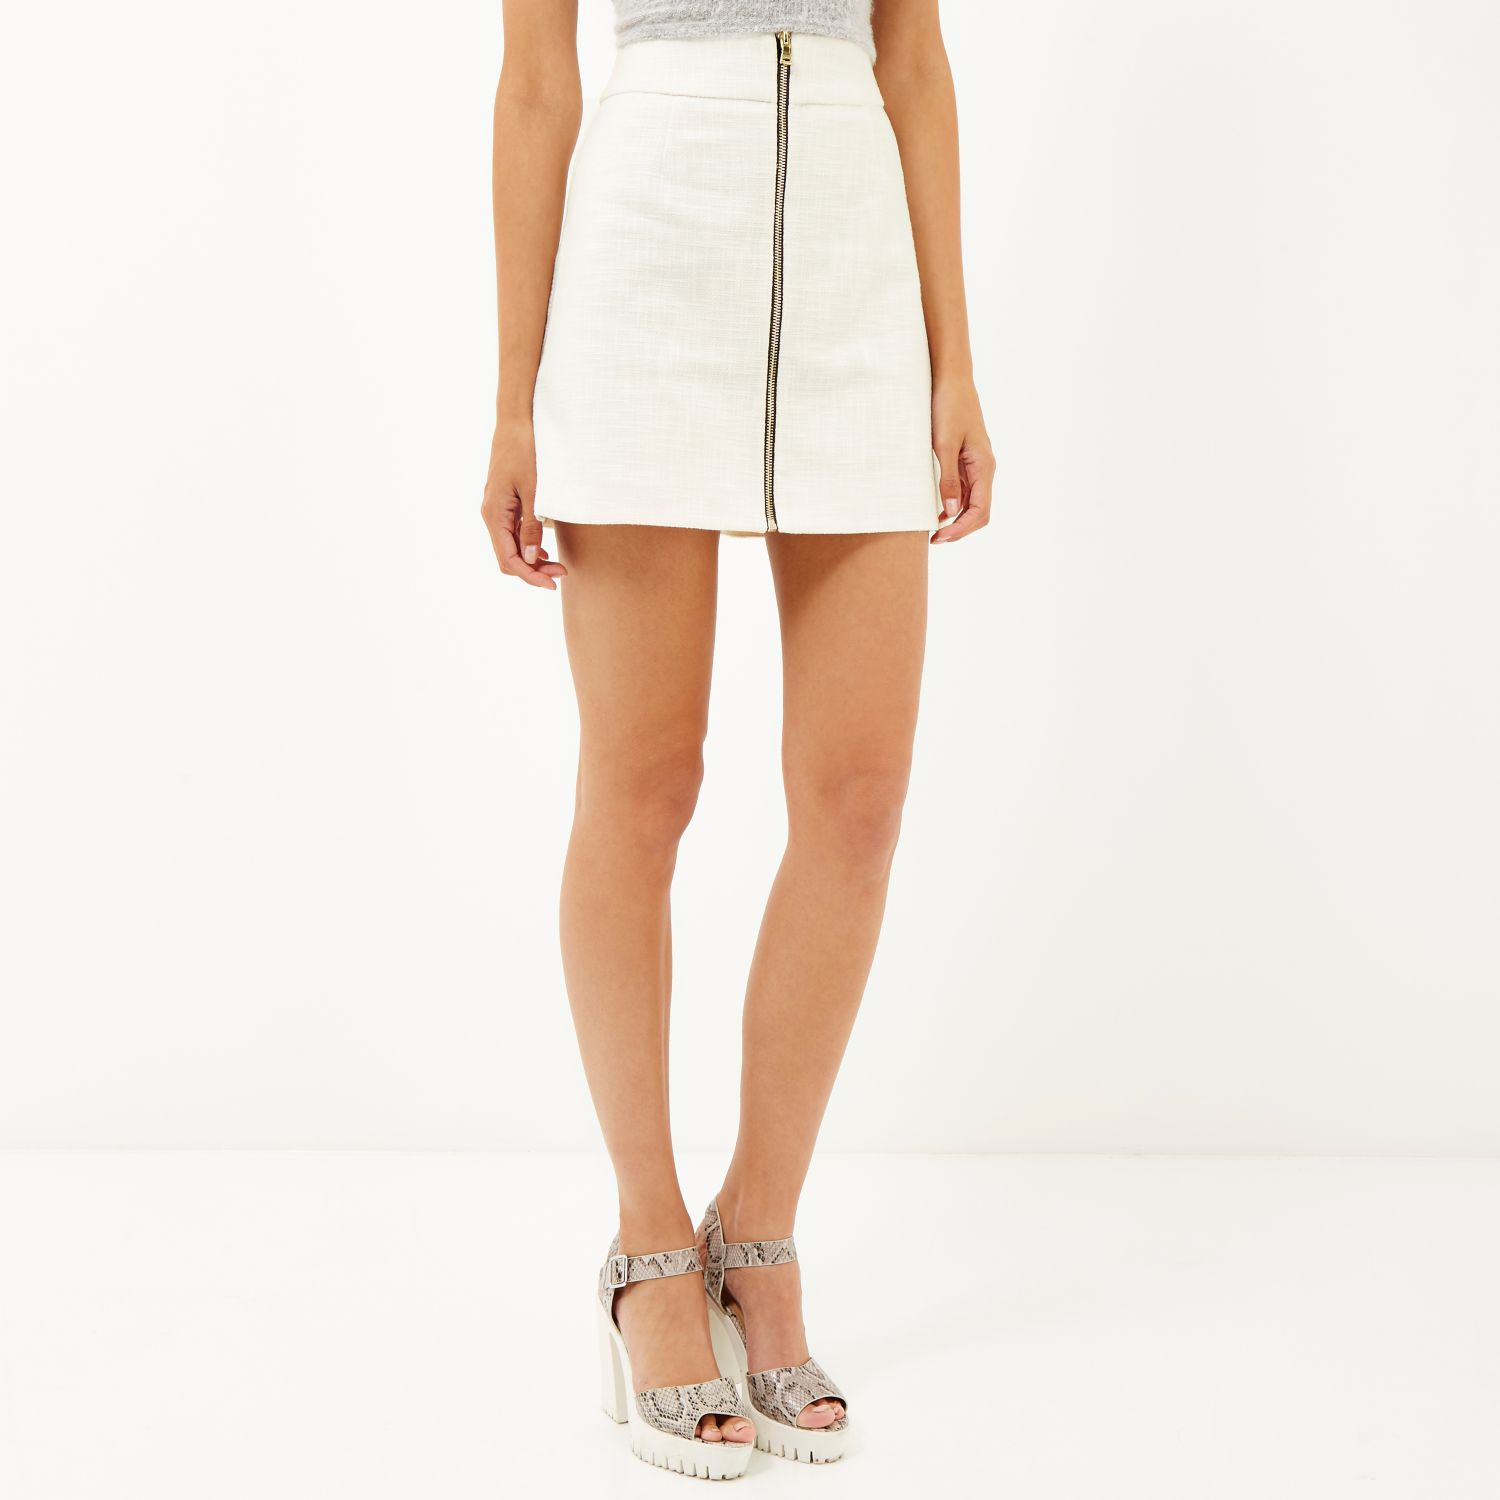 River island White Tweed Zip Front A-line Skirt in White | Lyst